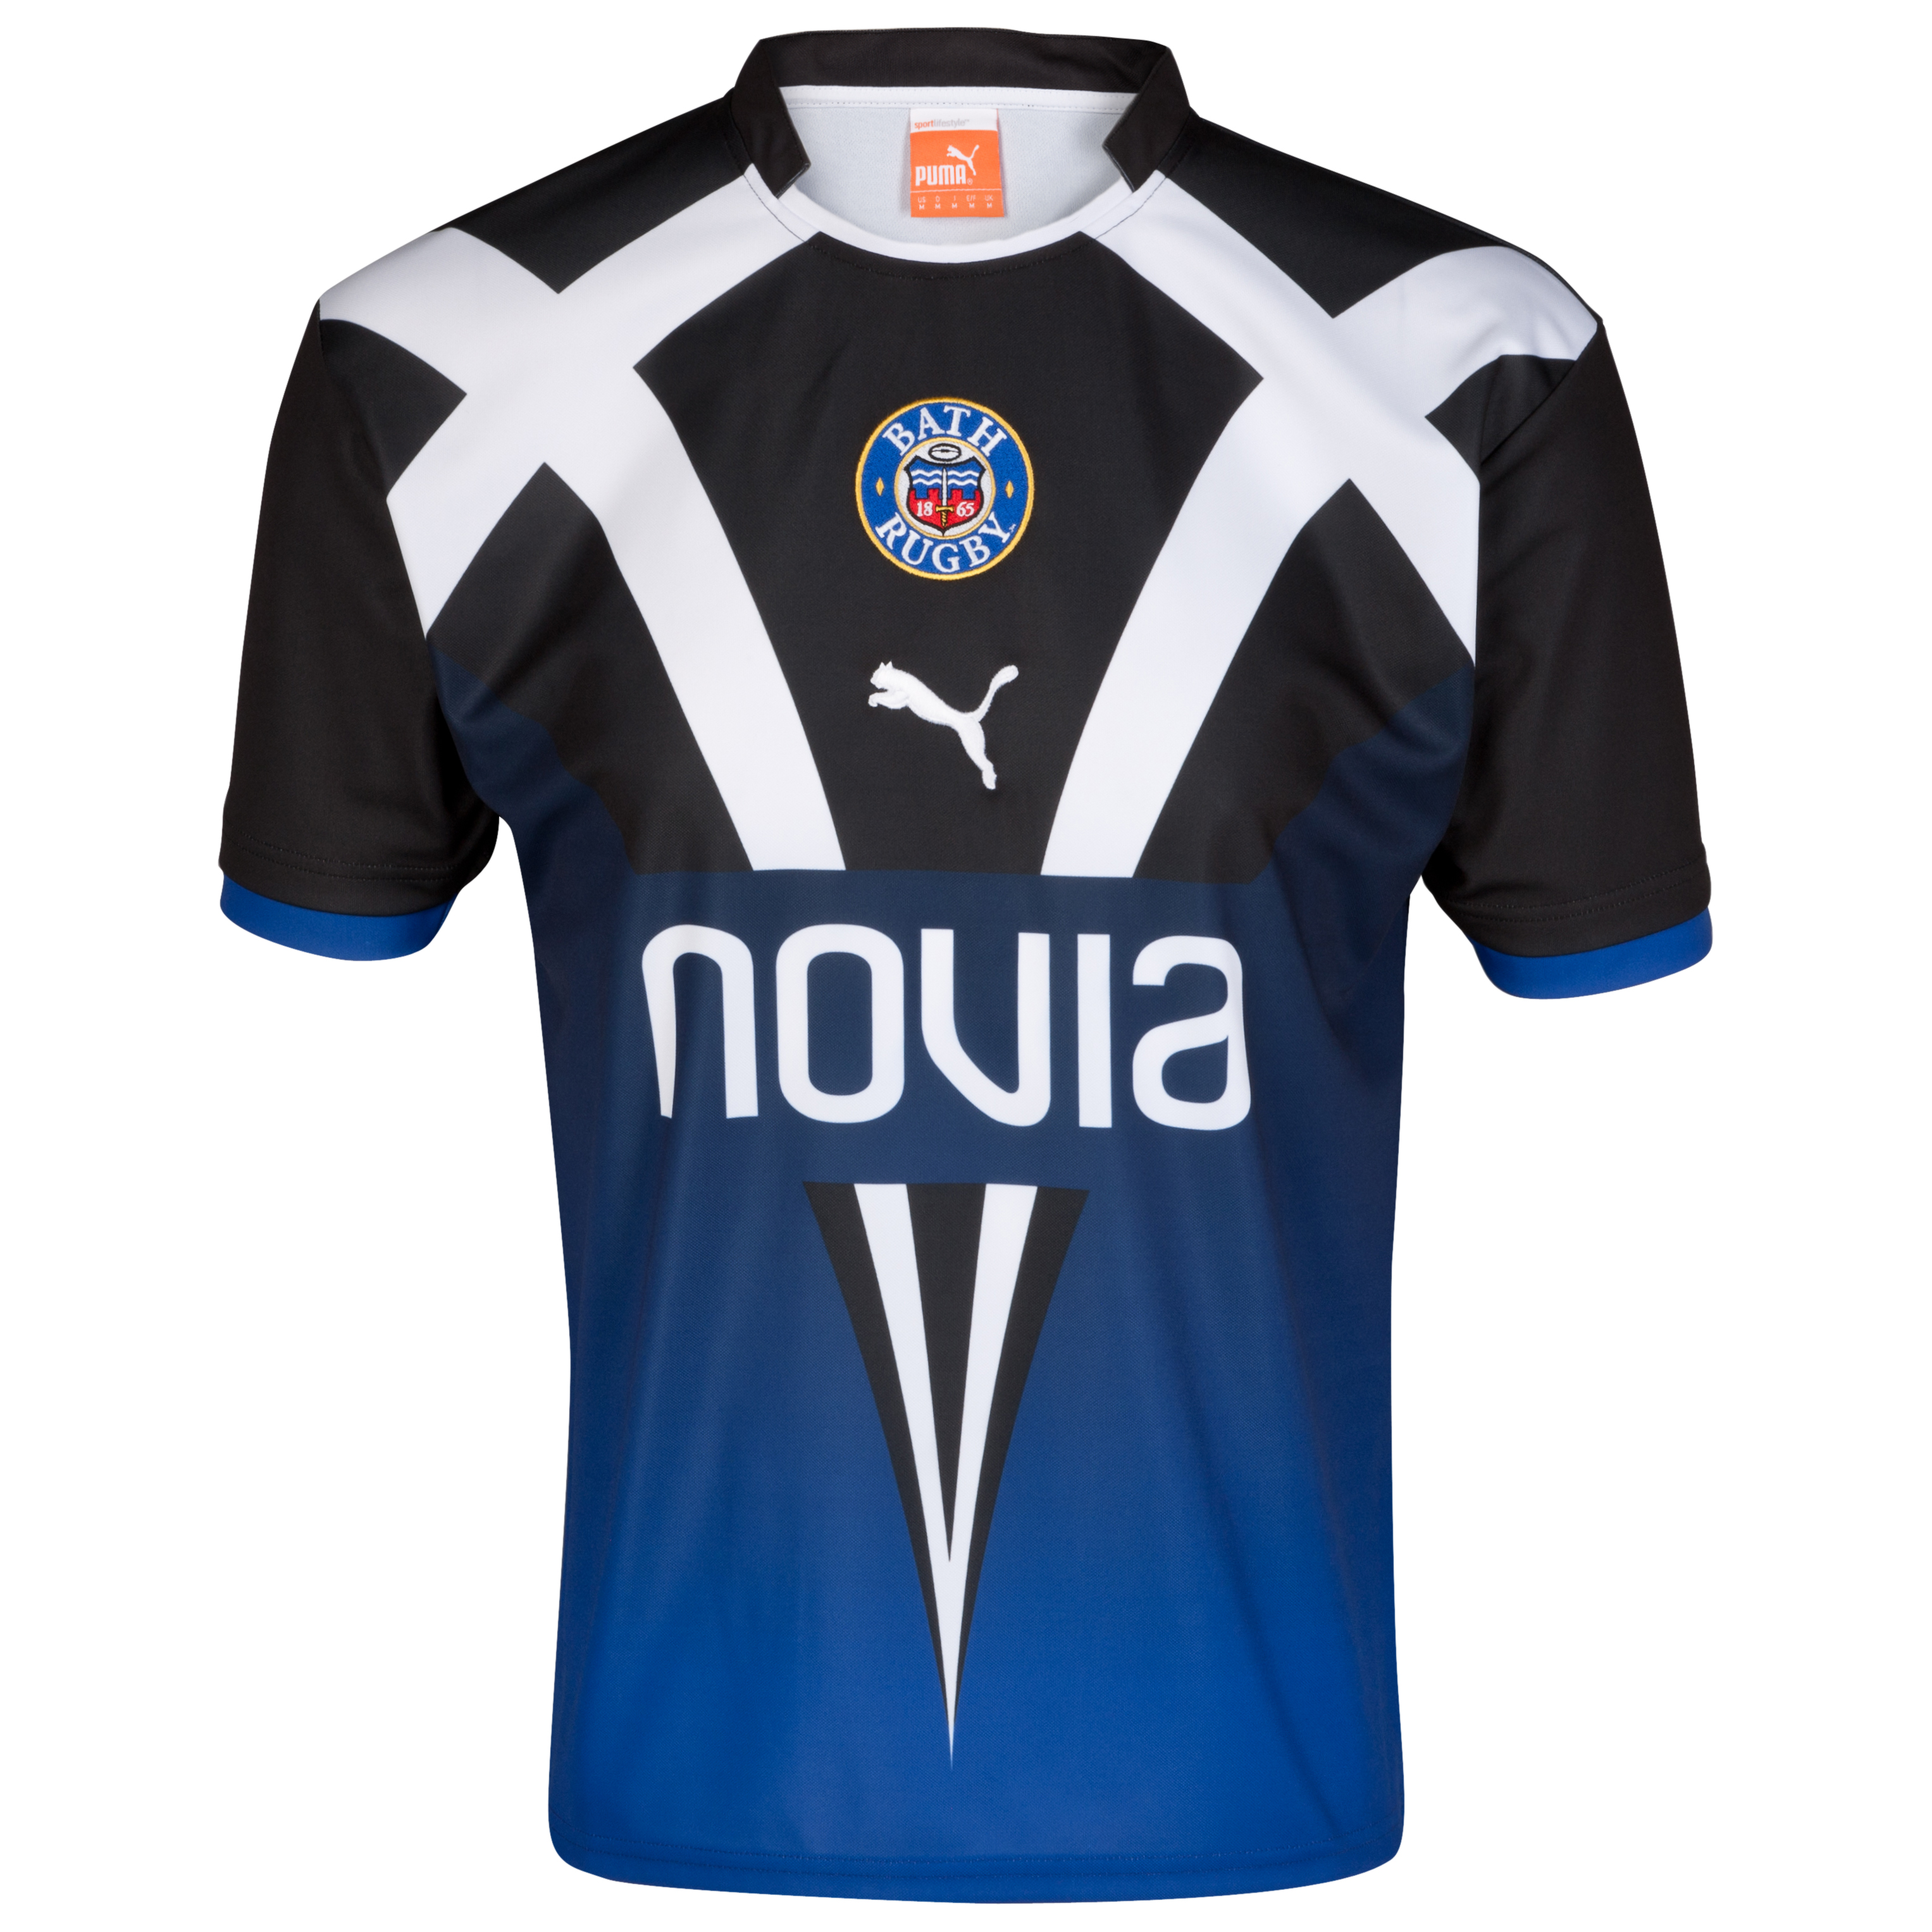 Bath Home Rugby Shirt 2012/13